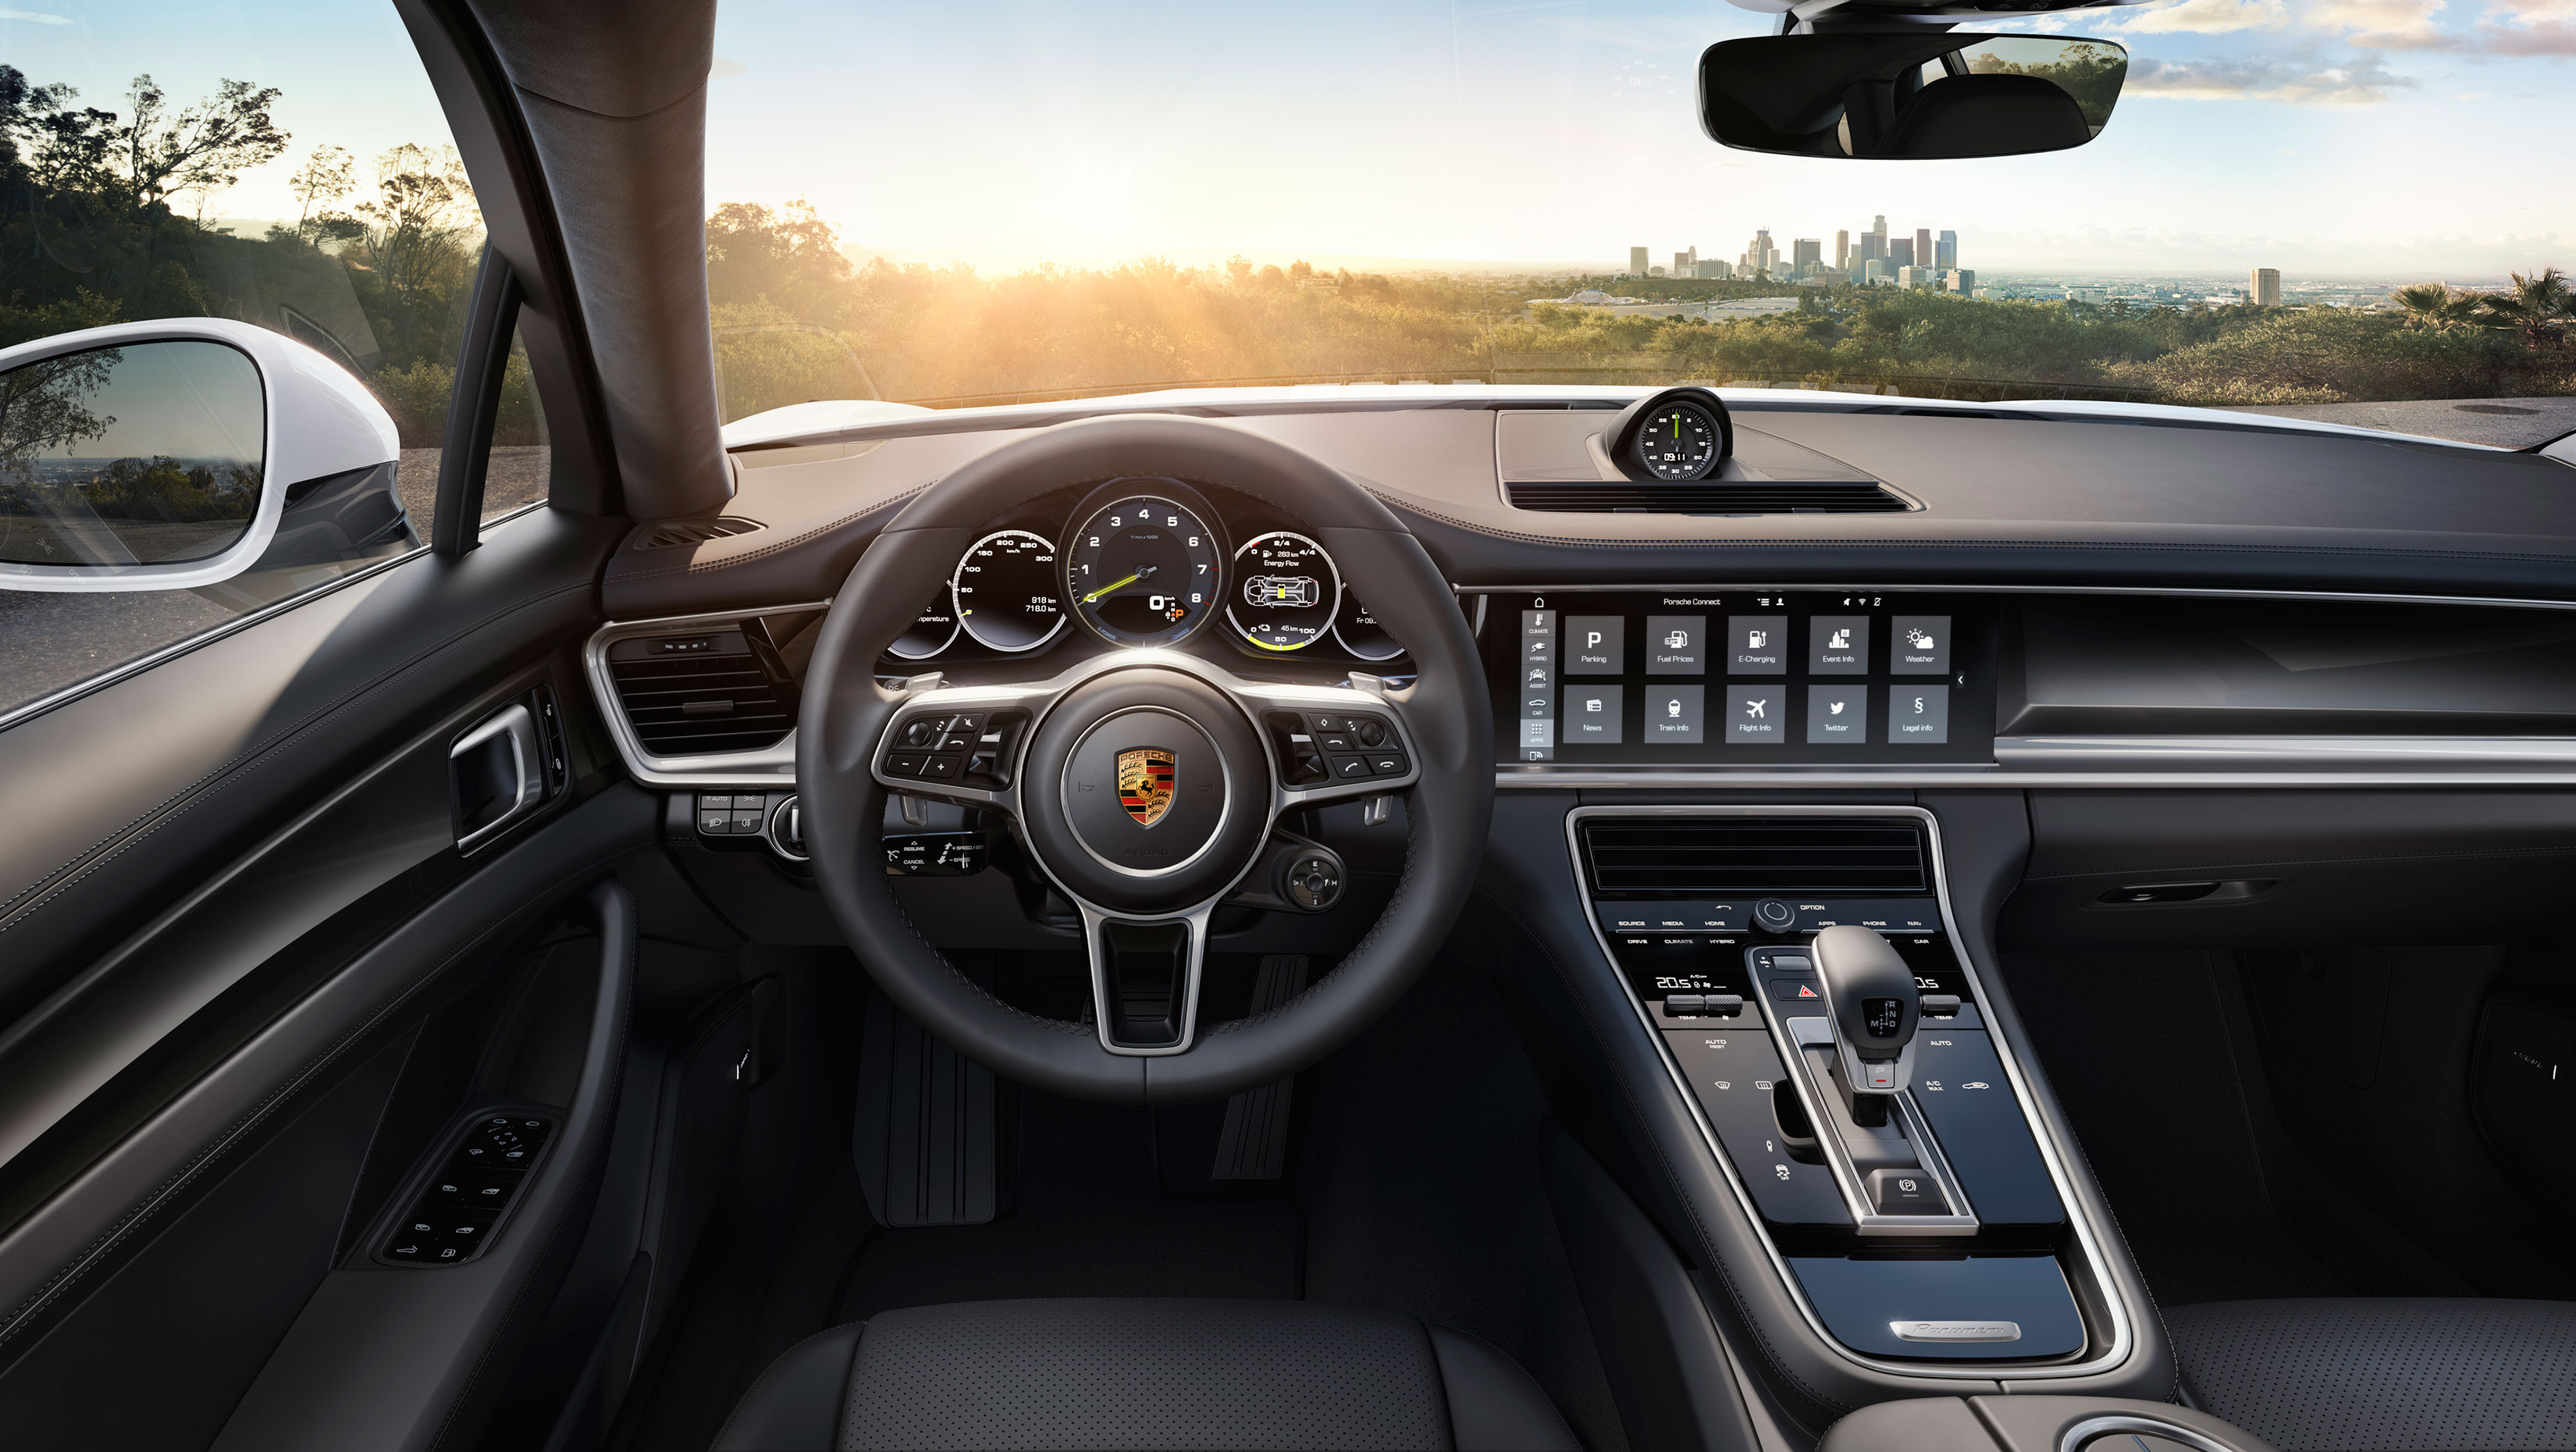 After The Panamera Next Year We Should Soon Get A Chance To See Porsche S First All Electric Vehicle Mission E